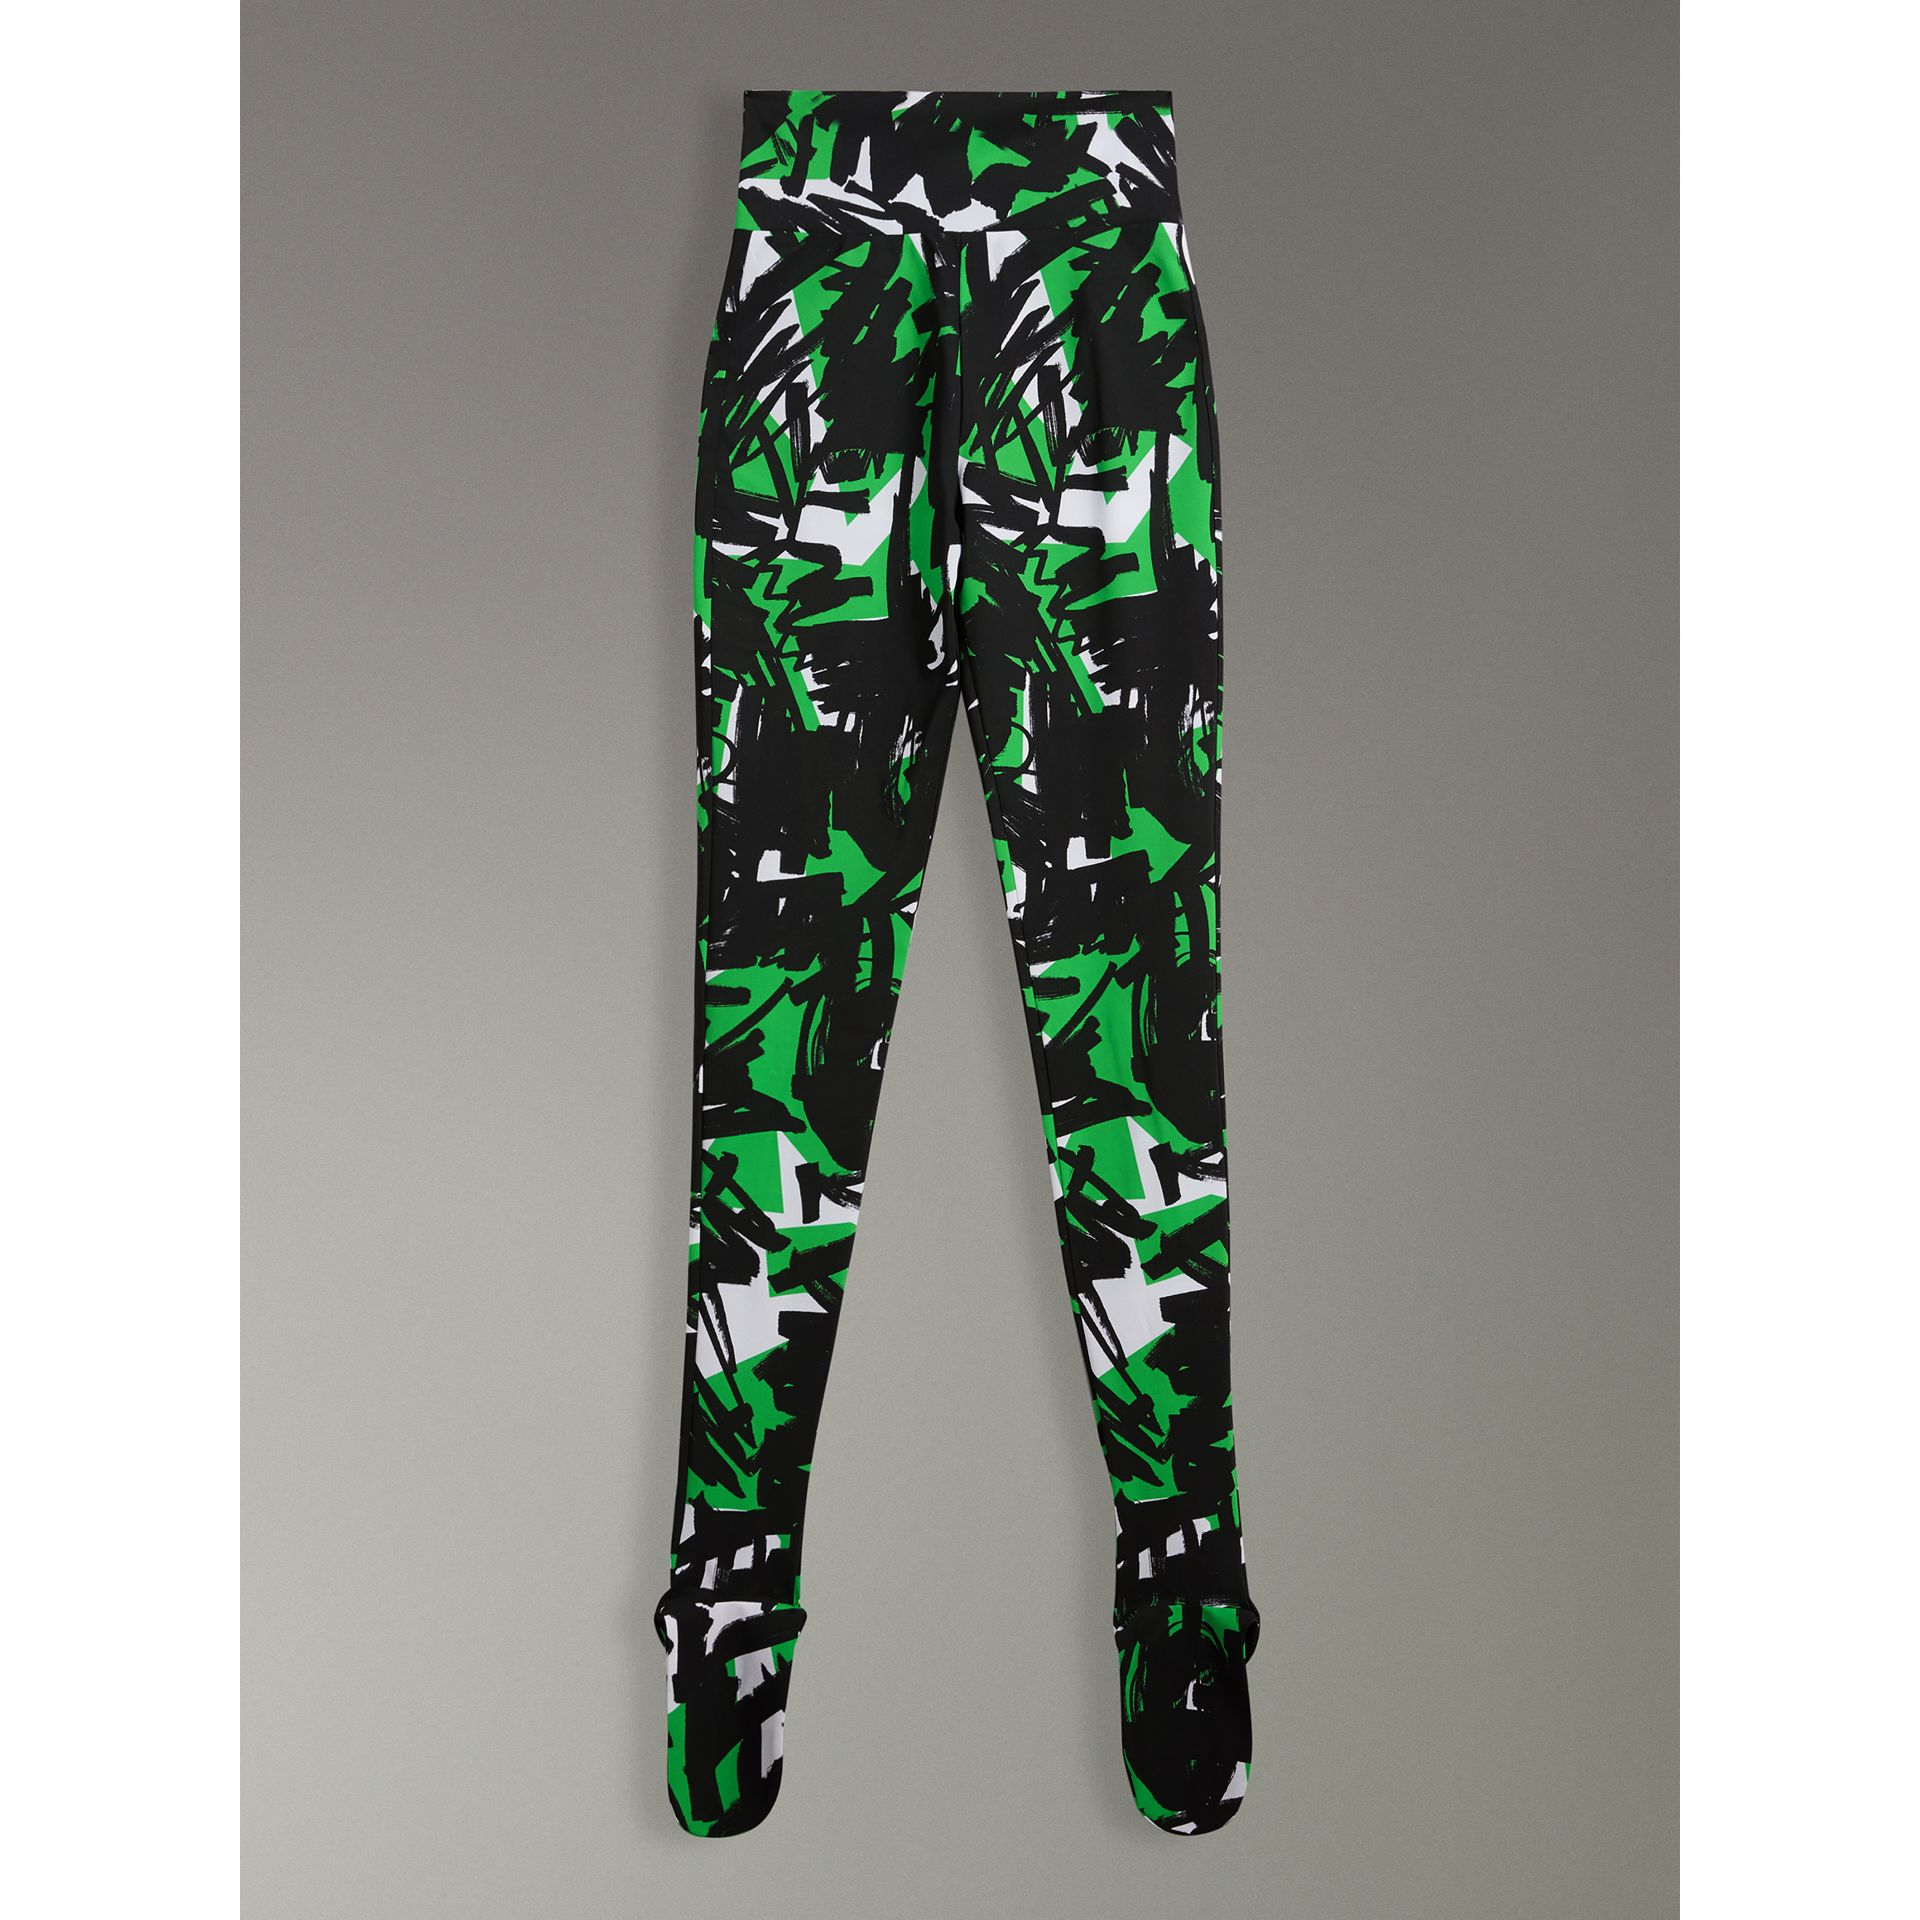 Graffiti Print Leggings in Neon Green - Women | Burberry Australia - gallery image 3